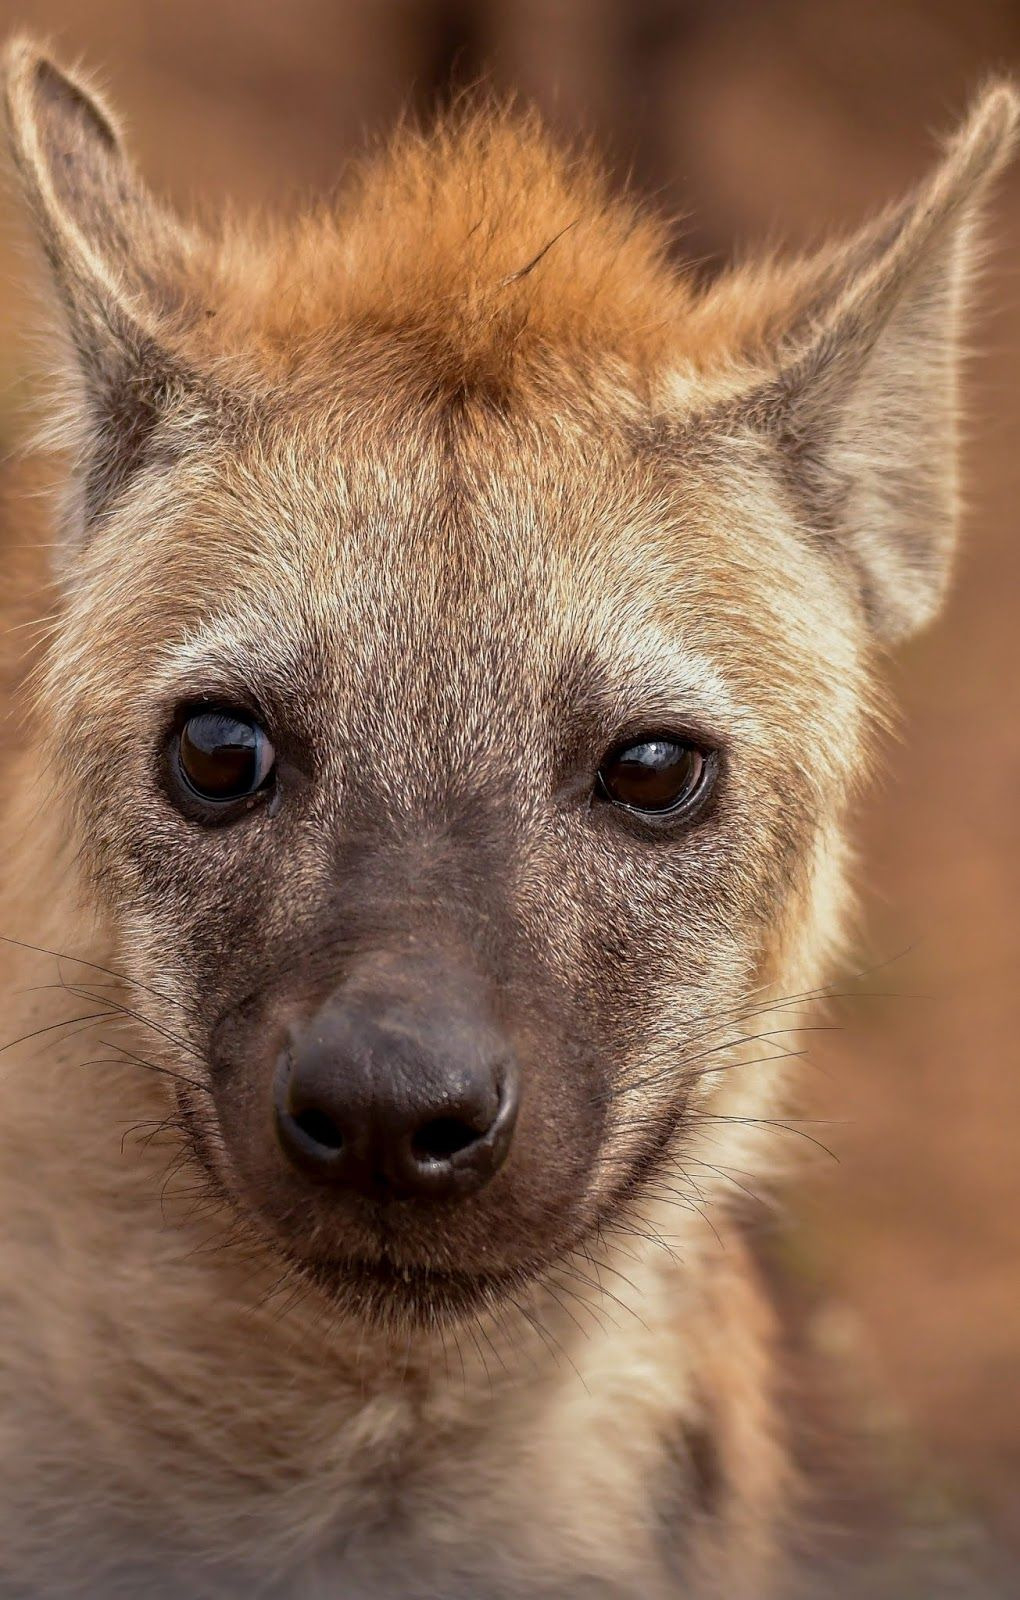 A young hyena (With images) Hyena animal, Animals, Baby